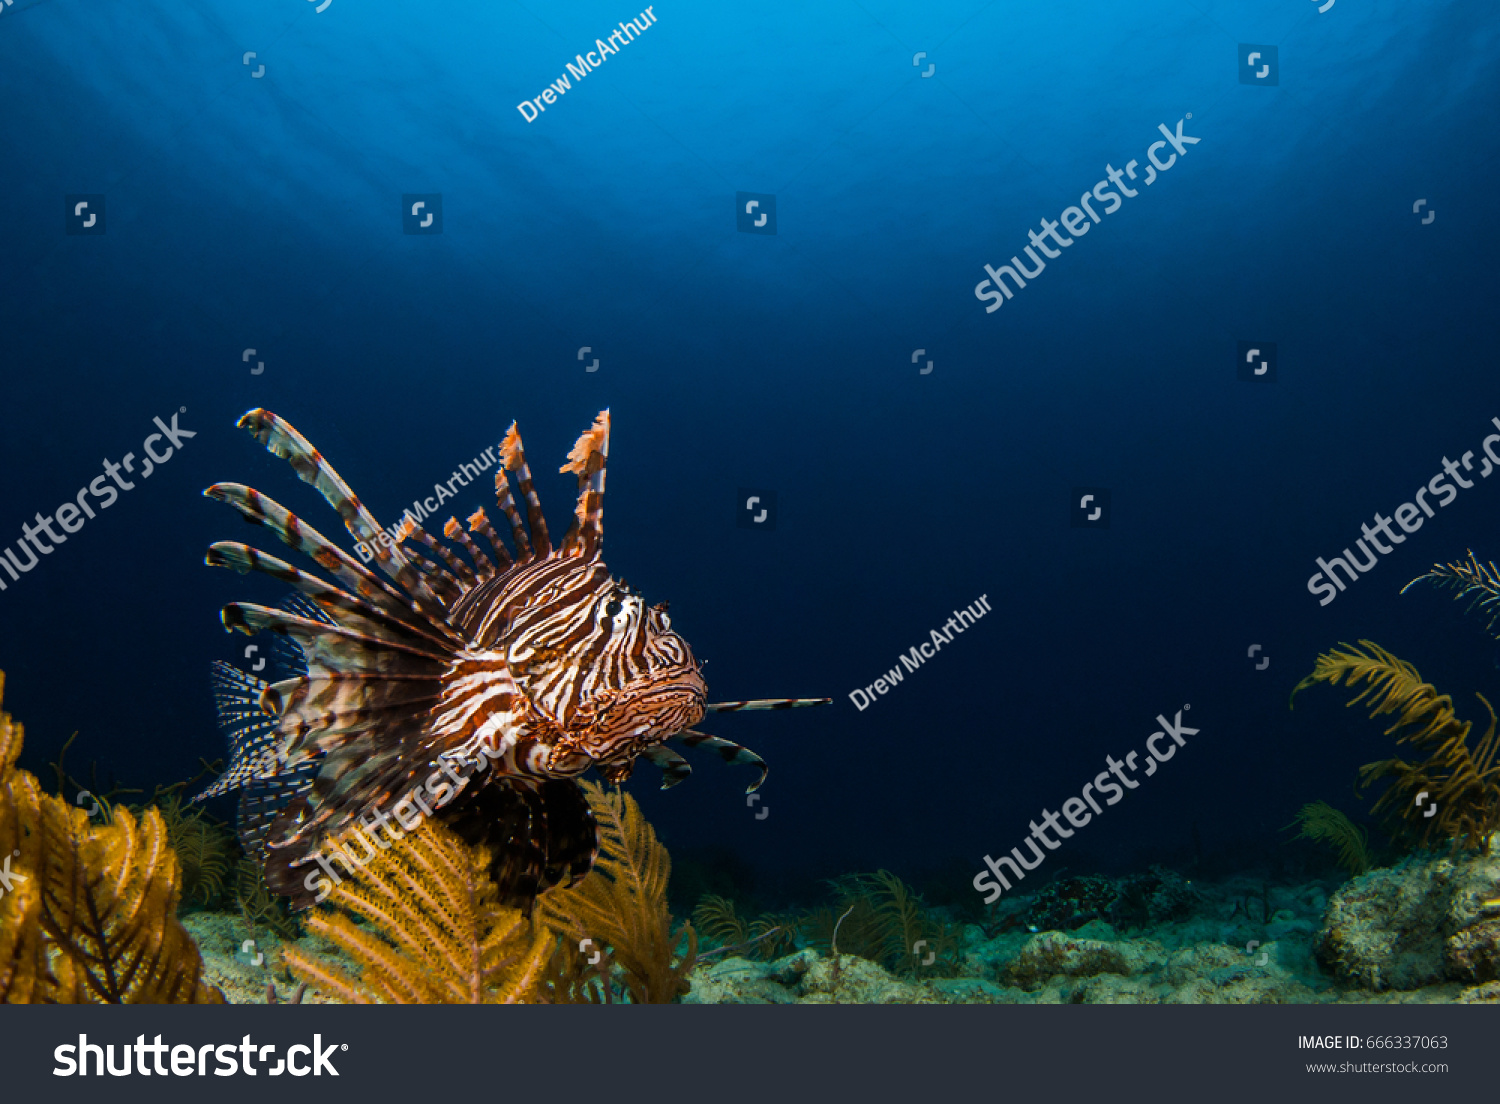 the lionfish an invasive species An invasive species is any plant, animal or other organism that is not native to an ecosystem invasive species invasive lionfish invasive cup coral.